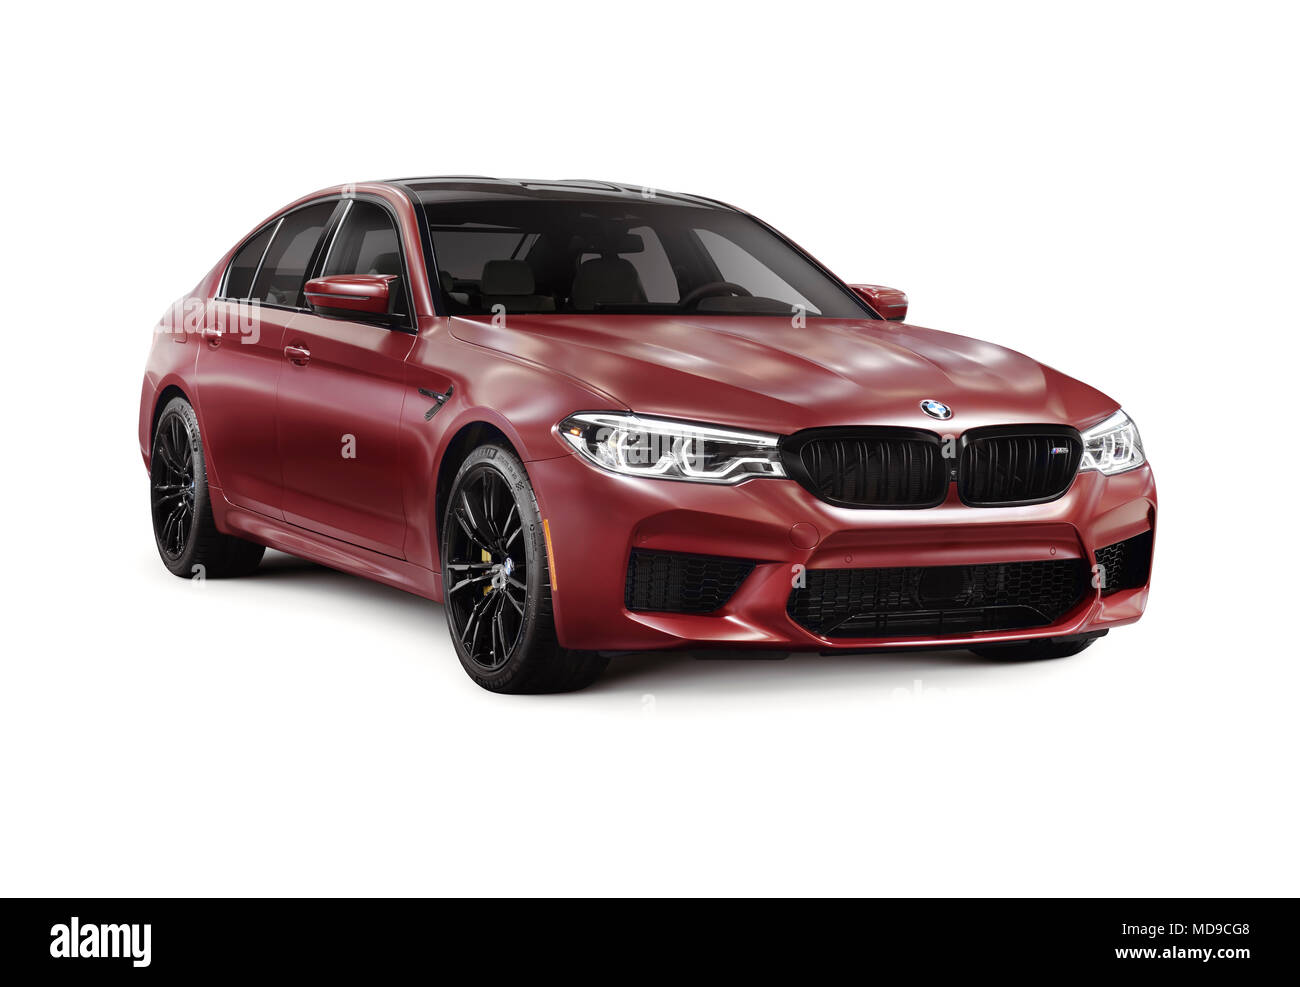 Sixth Generation Bmw M5 With M Xdrive 2018 Performance Car Luxury Sport Sedan 5 Series In Dark Red Burgundy Matte Color Stock Photo Alamy